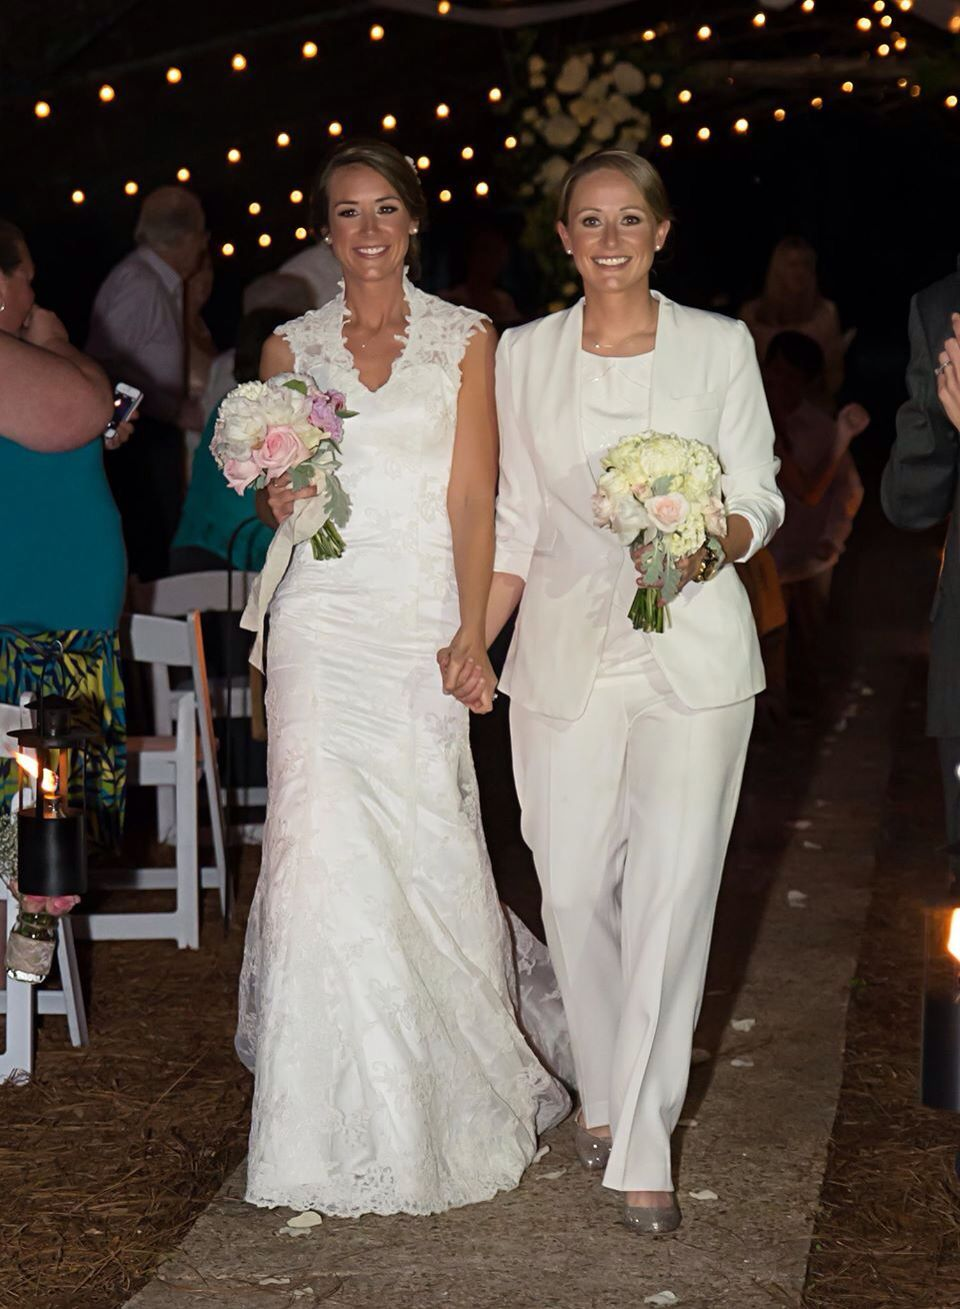 Lesbian wedding suits images for Lesbian wedding dresses and suits